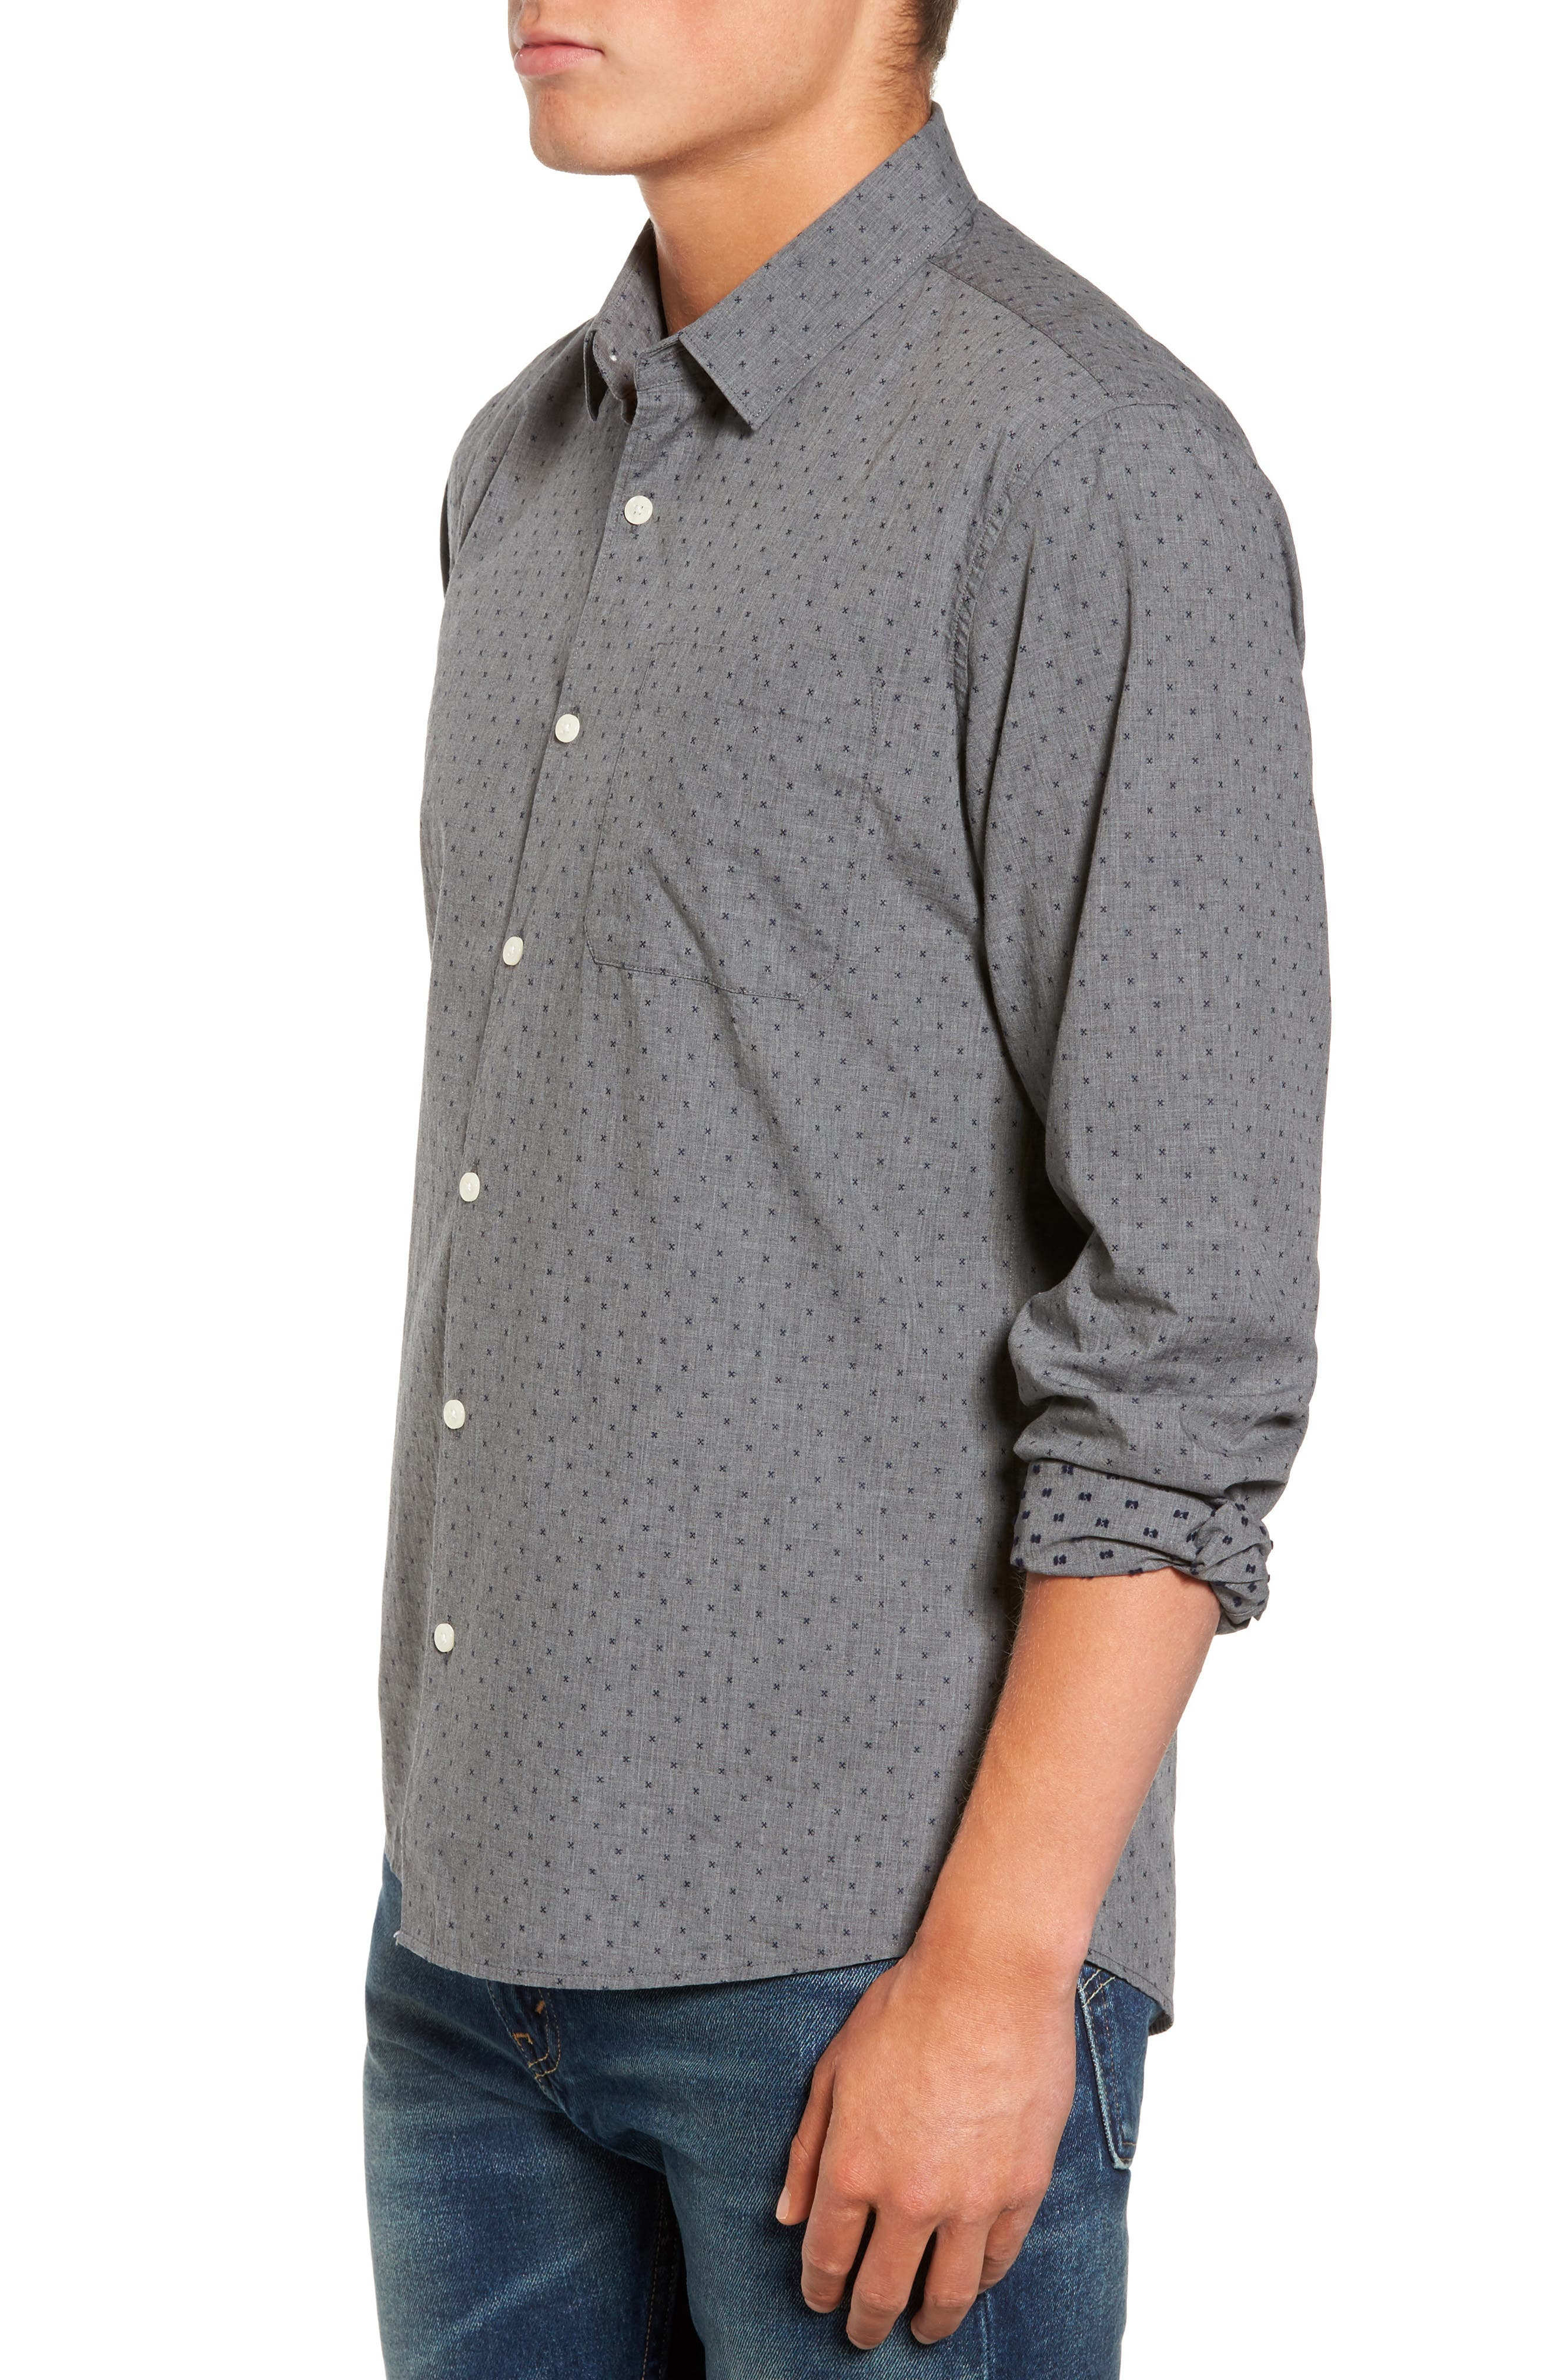 Steel Sky Woven Shirt,                             Alternate thumbnail 3, color,                             410